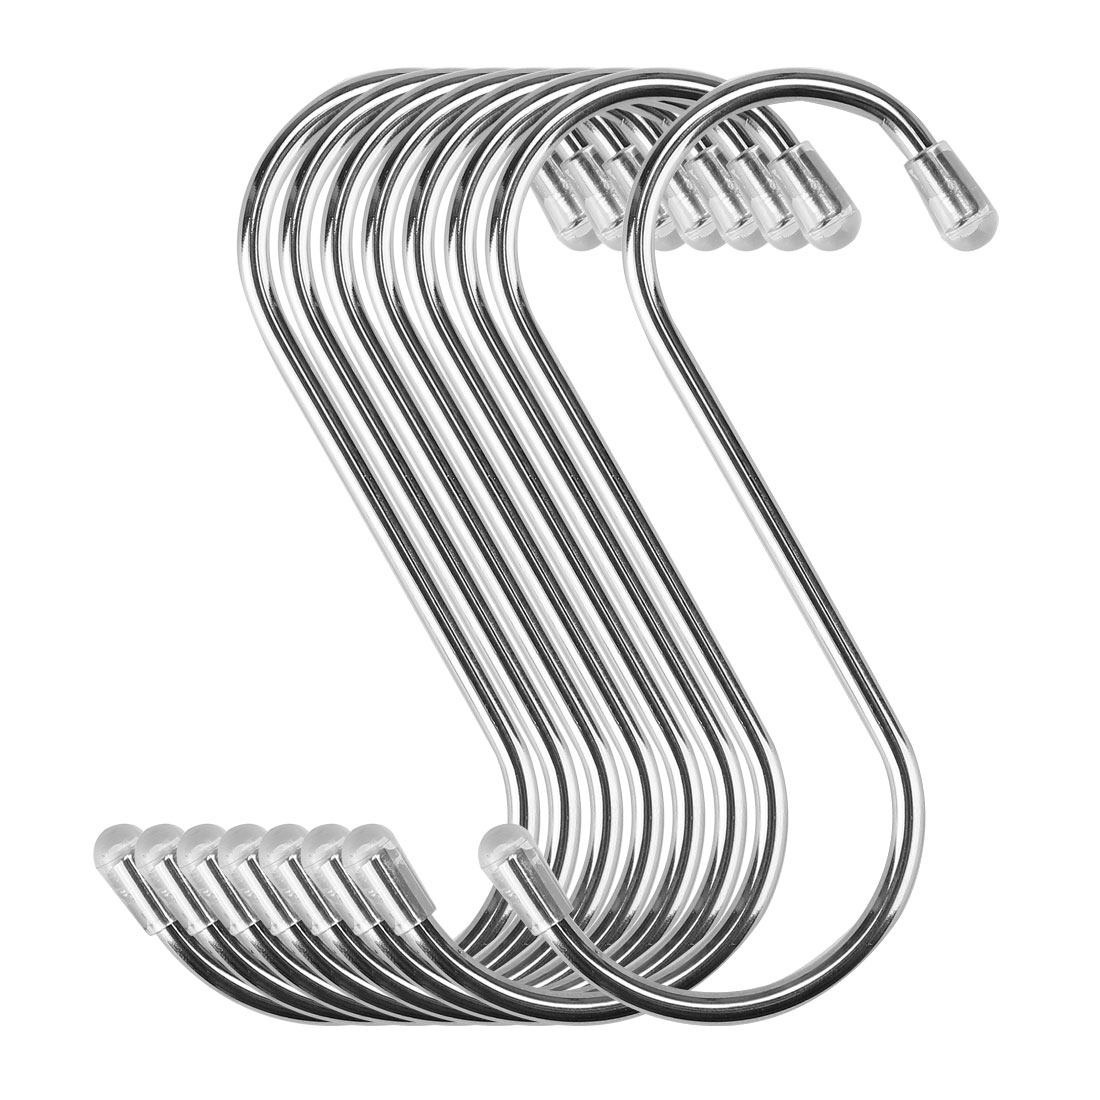 S Shape Hook Rack Stainless Steel for Kitchenware Coat Towels Holder 8 Pack